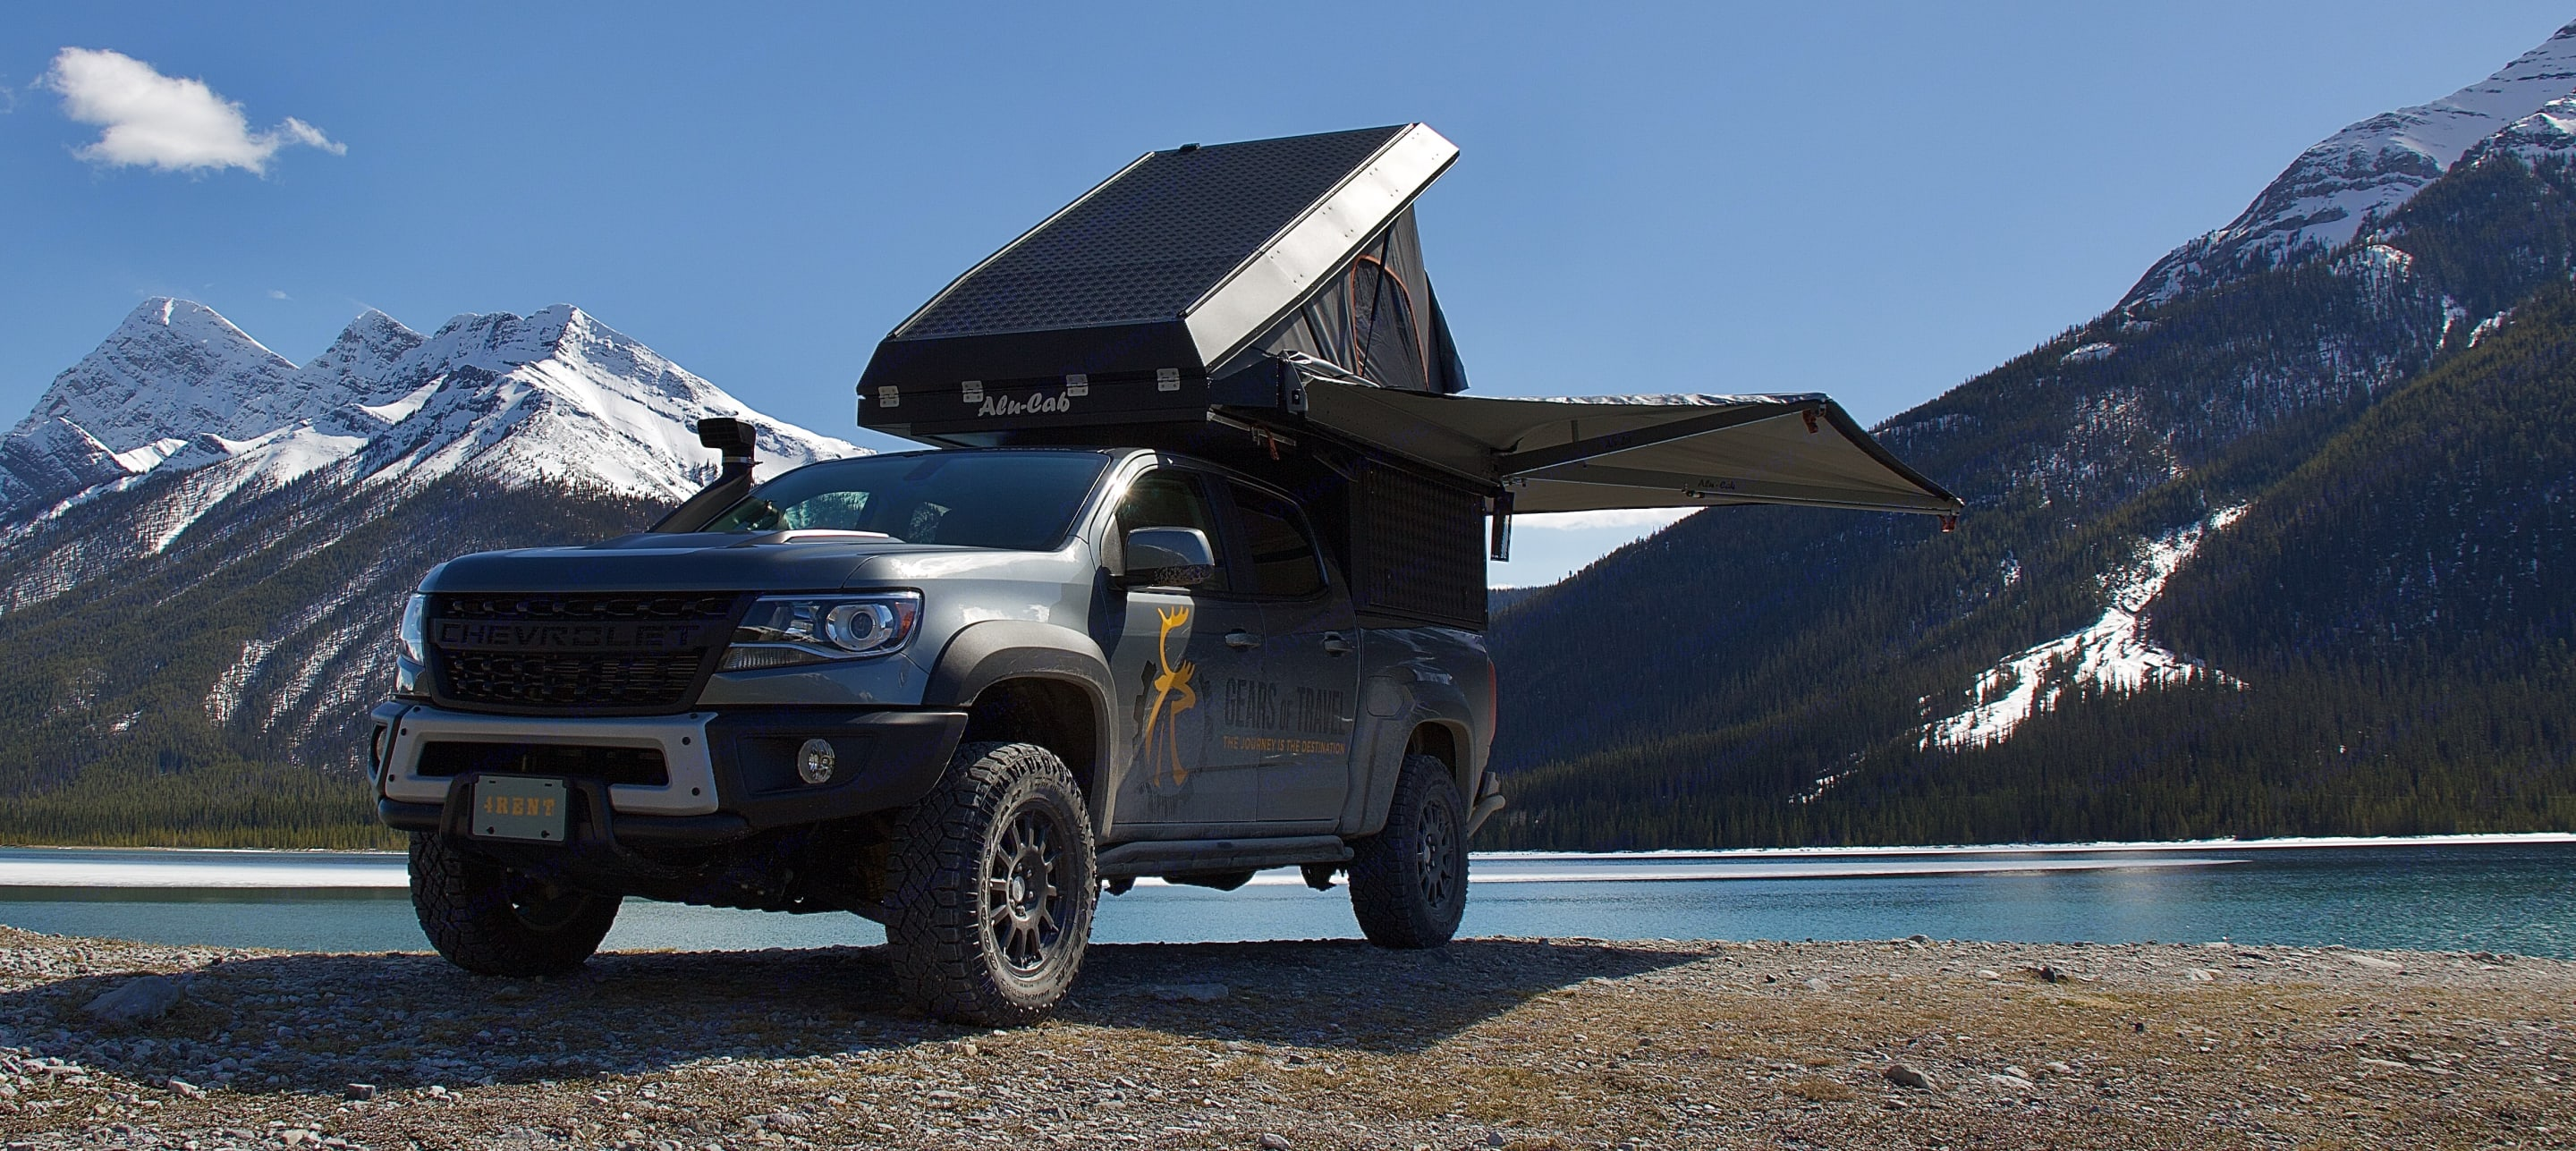 270° Awning protects from sun and rain. Chevrolet Colorado ZR2 Bison 2019